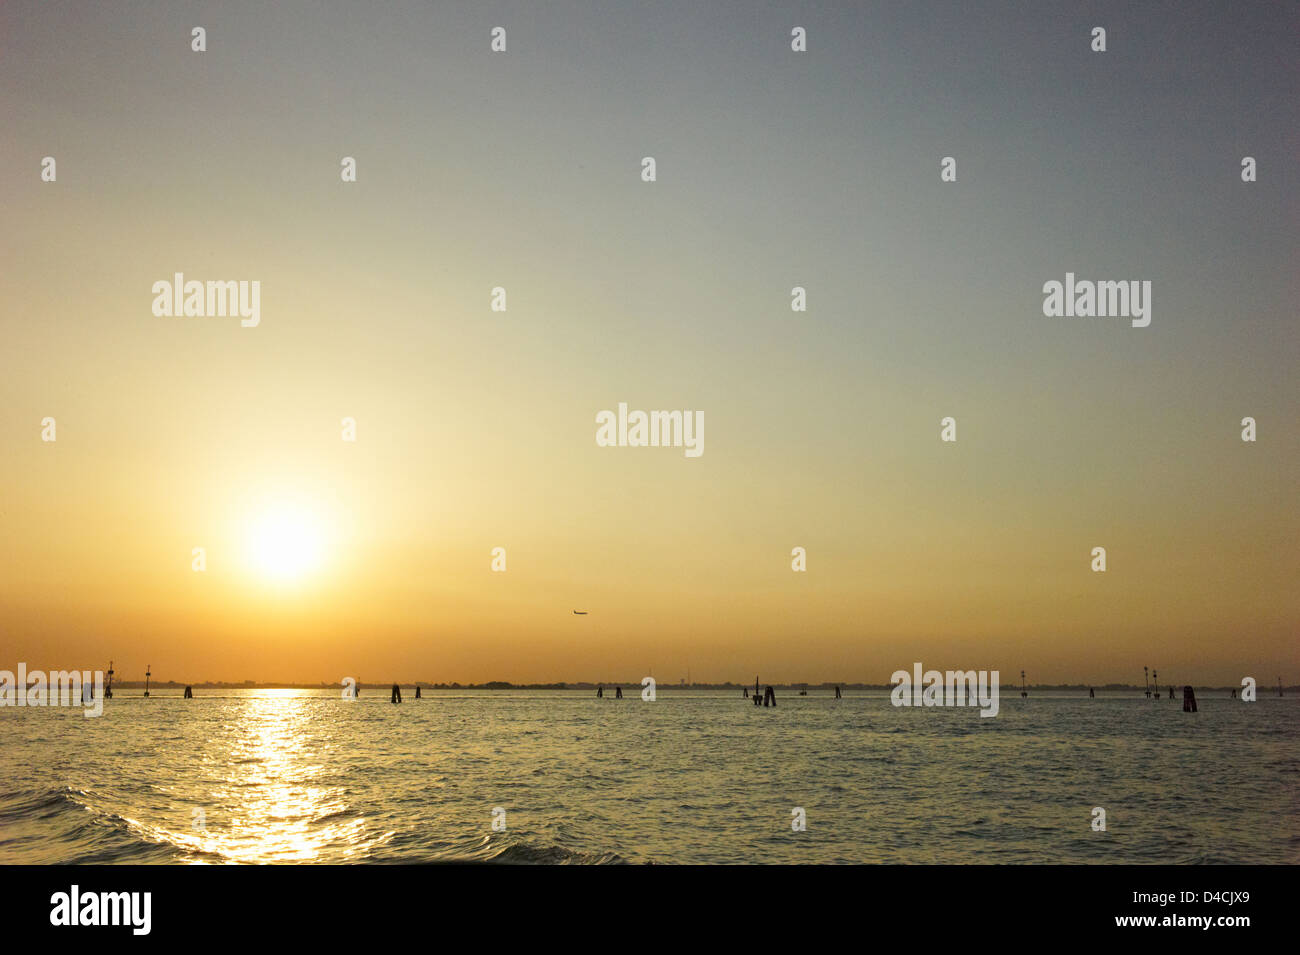 A distant plane flies over the Venice Lagoon in Venice, Italy at sunset - Stock Image